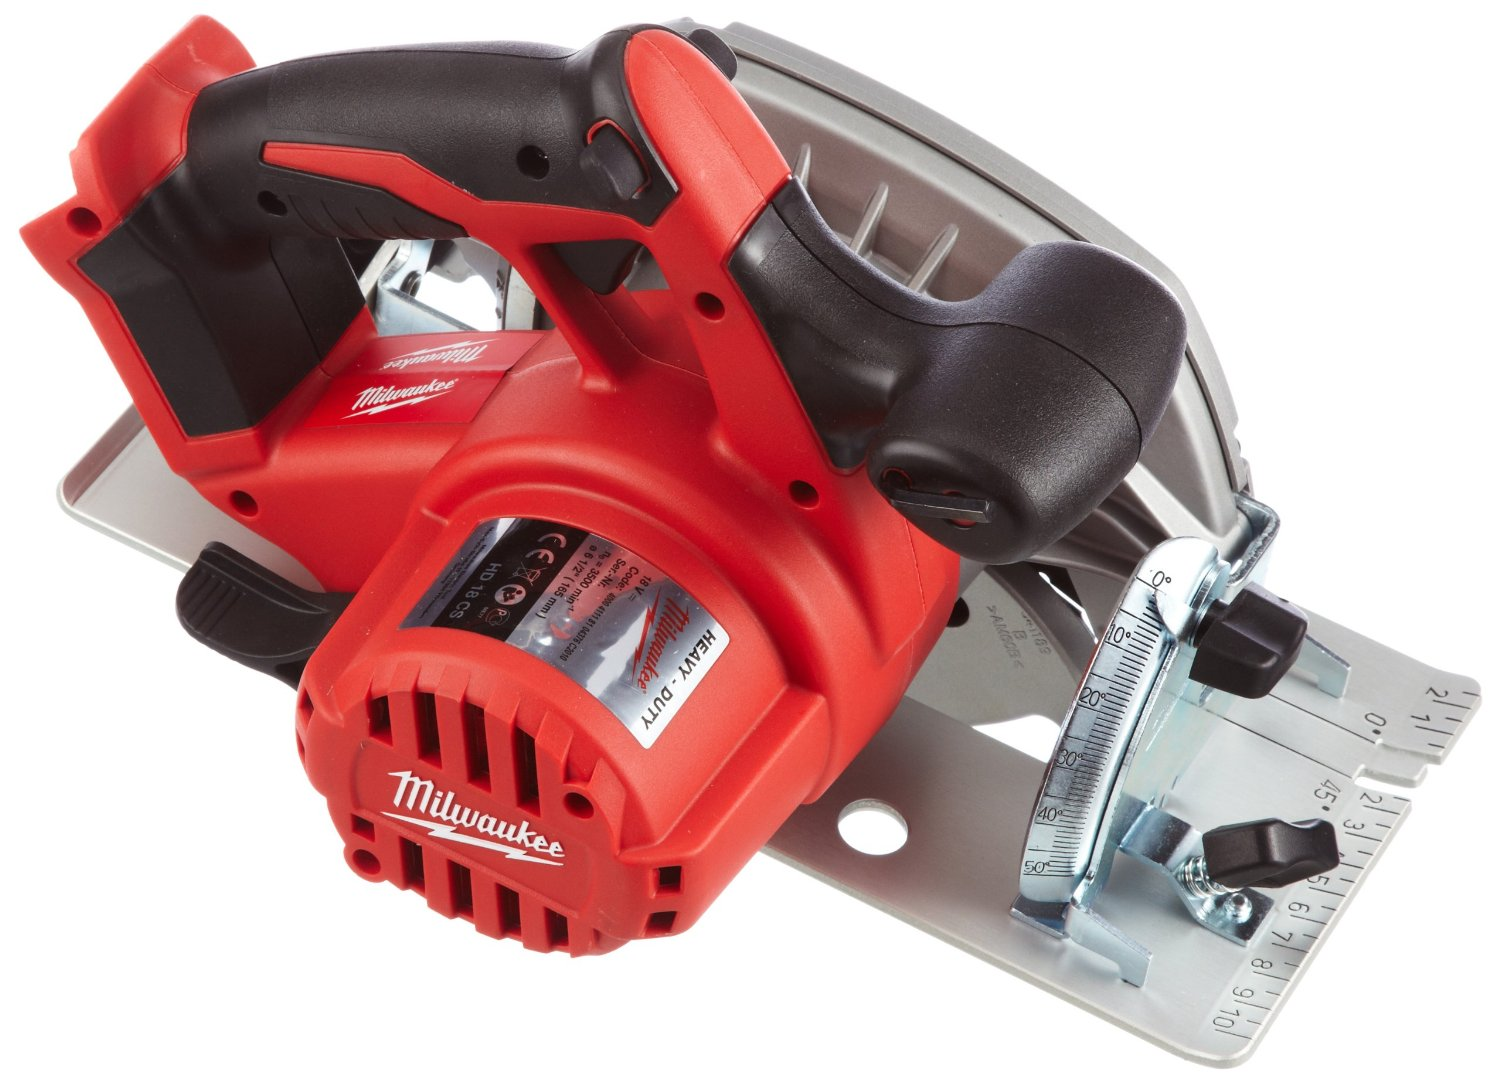 HD18CS-0 M18 Heavy Duty Circular Saw for wood and plastic